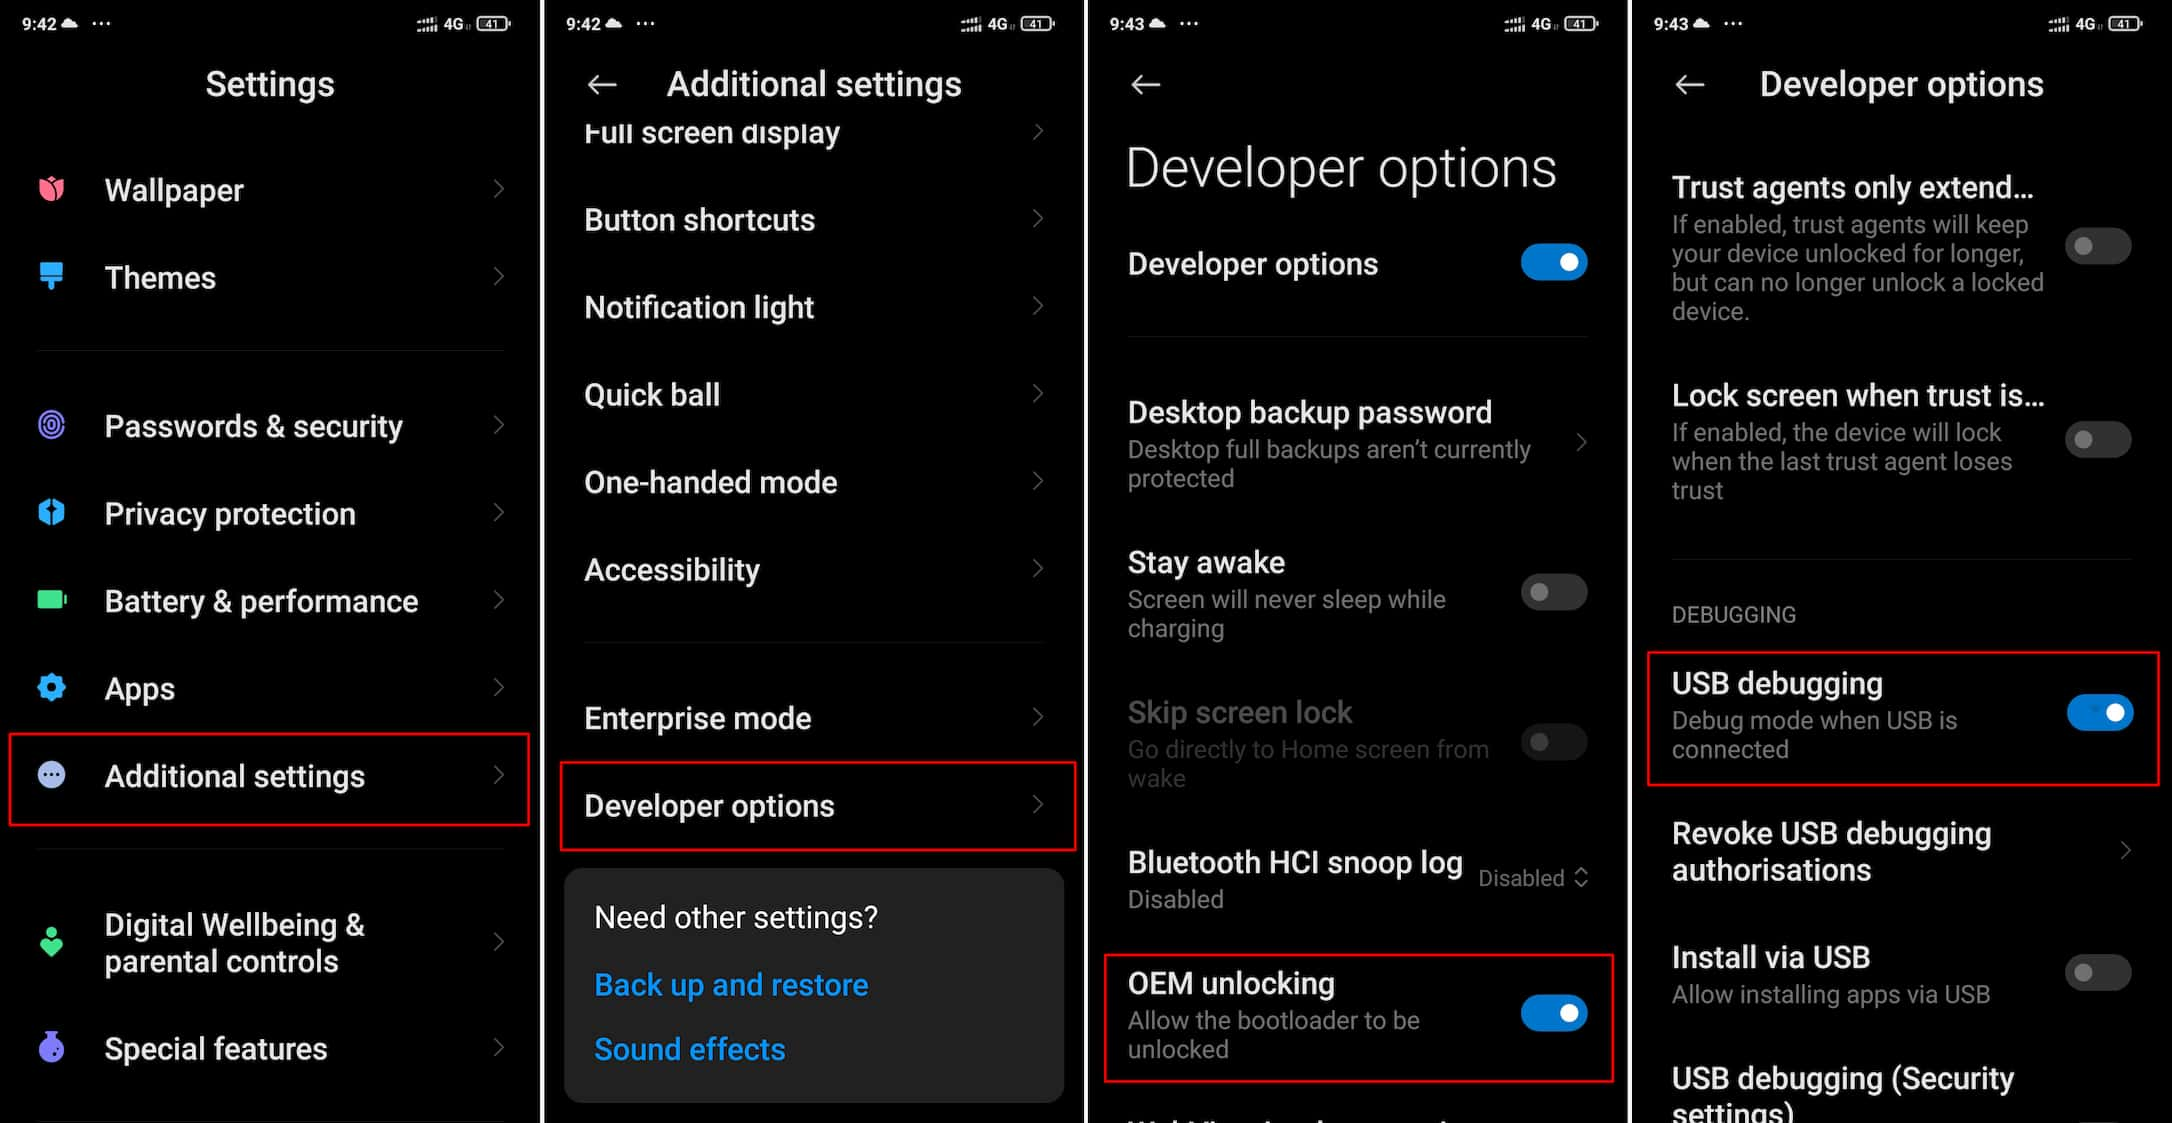 Xiaomi Developer Options OEM unlocking USB Debugging